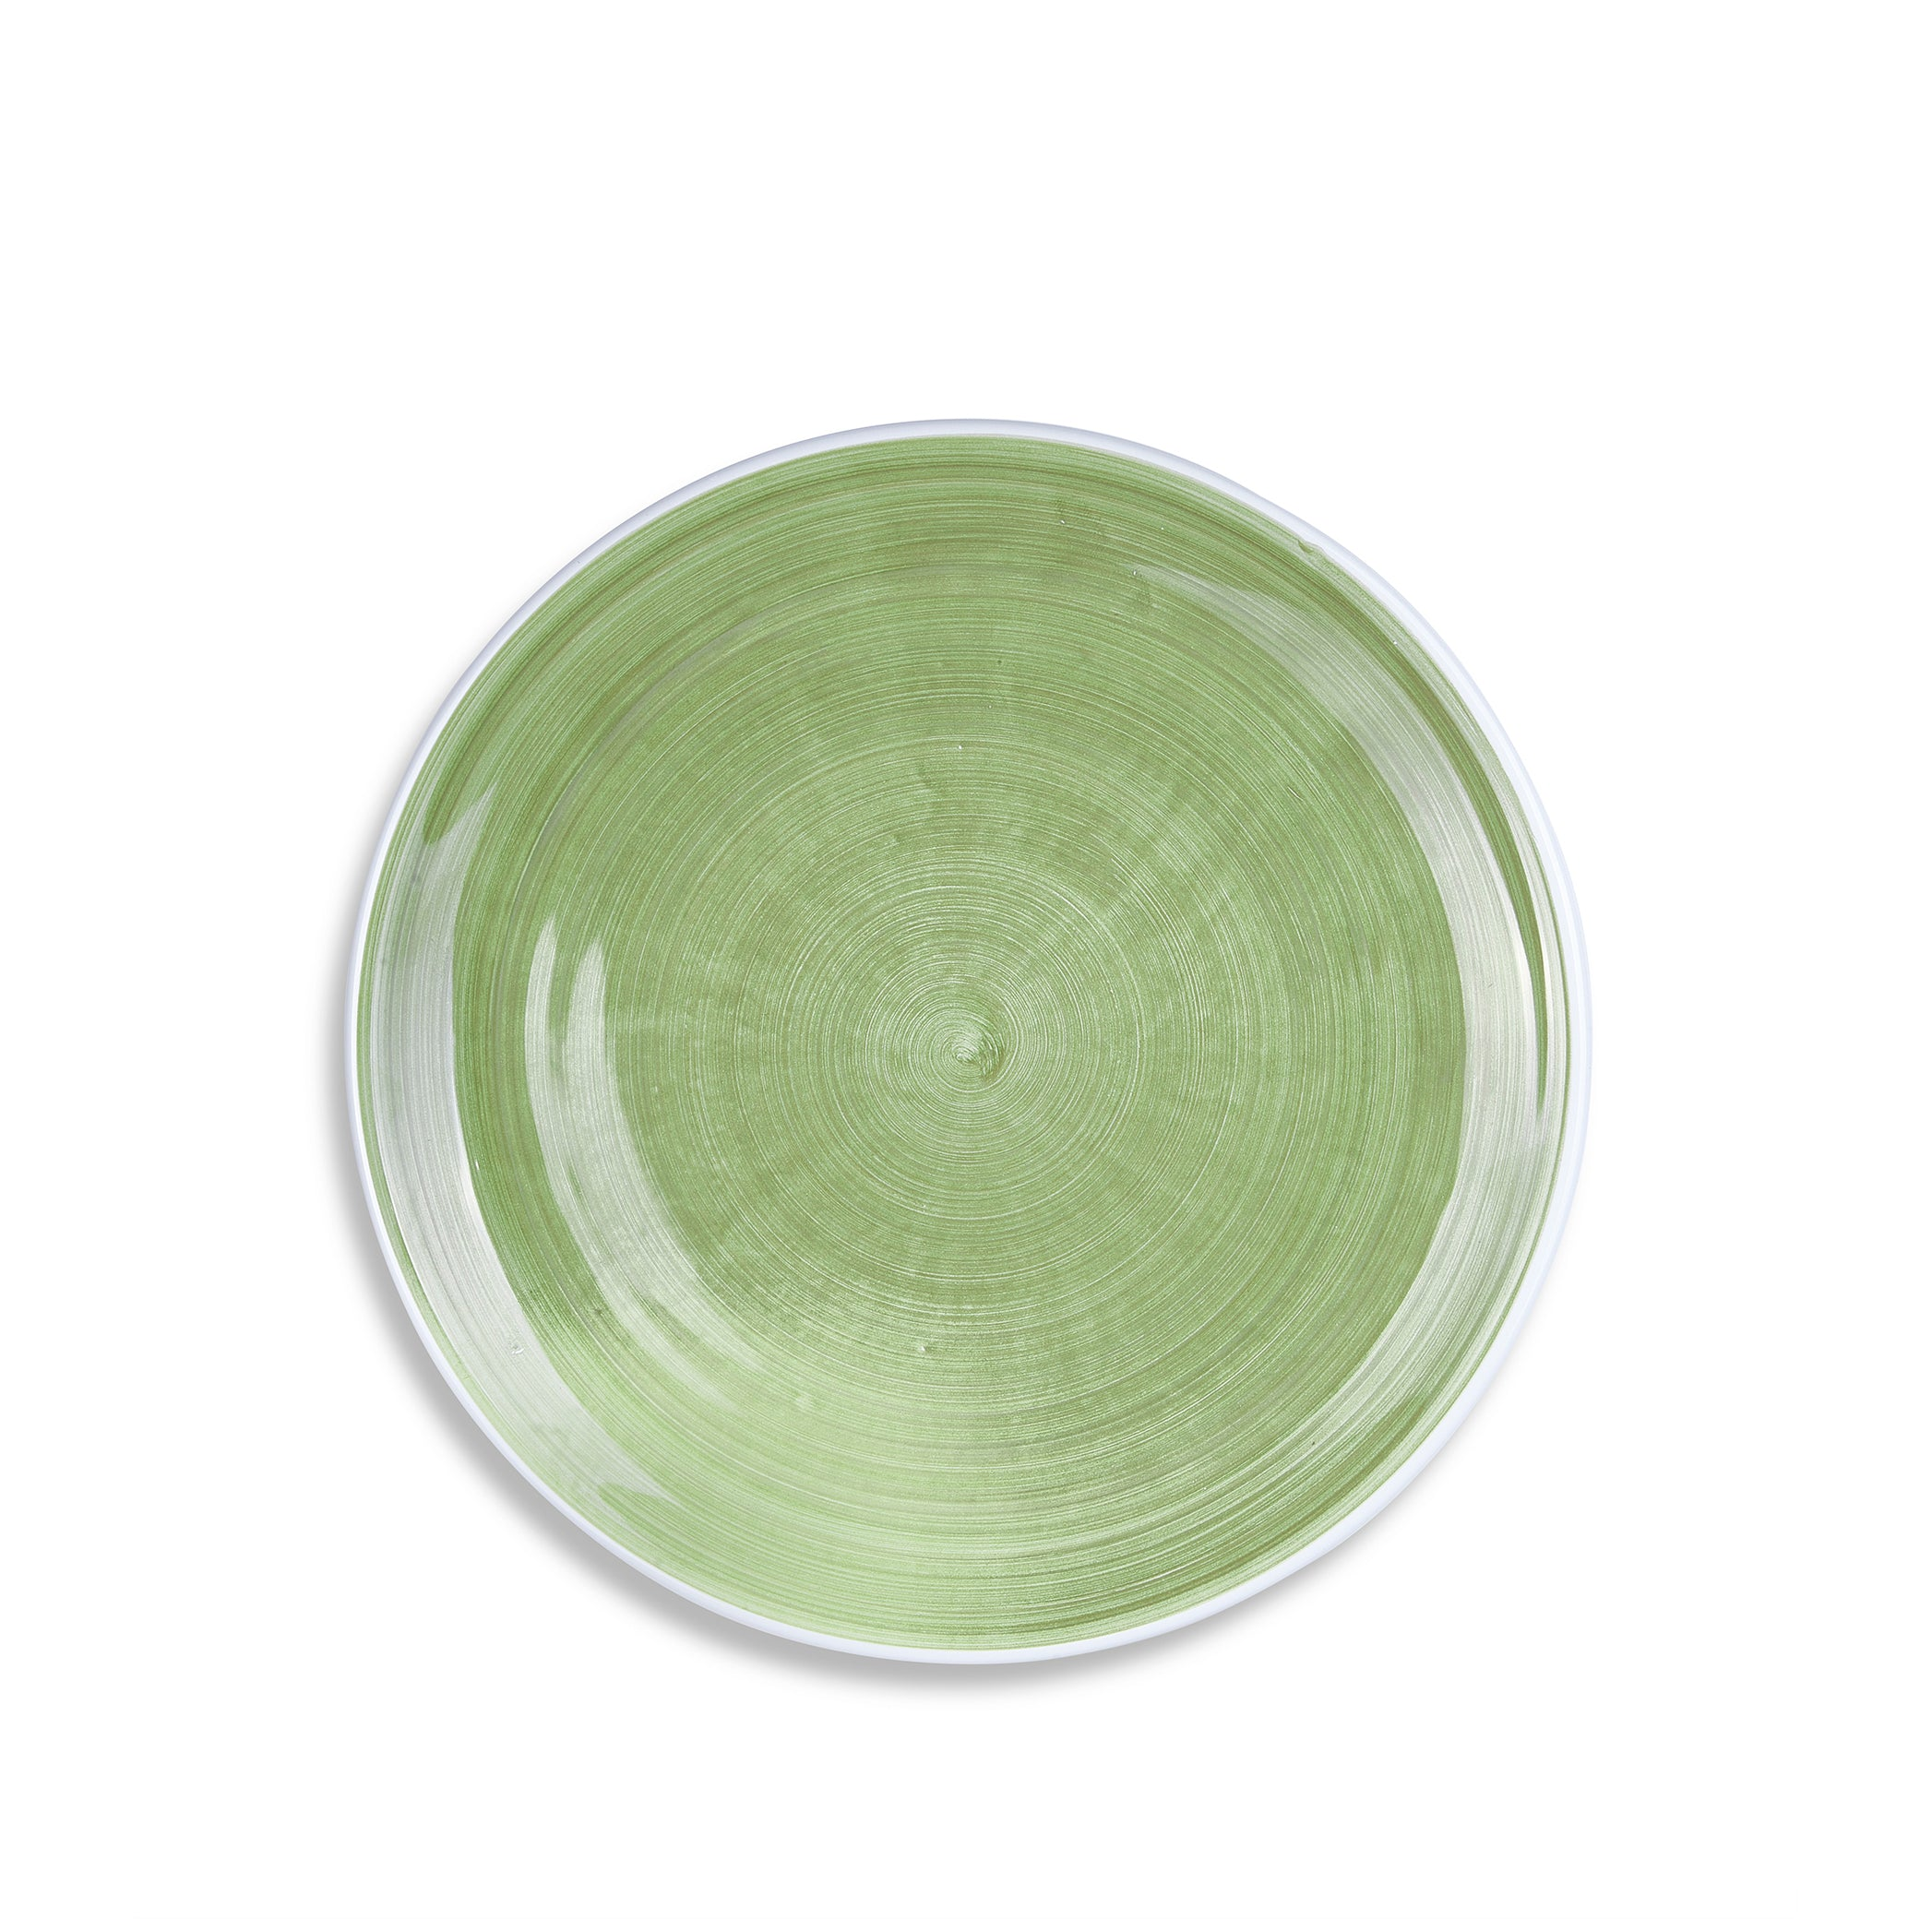 S&B 'Brushed' Ceramic Dinner Plate in Season Green, 28cm